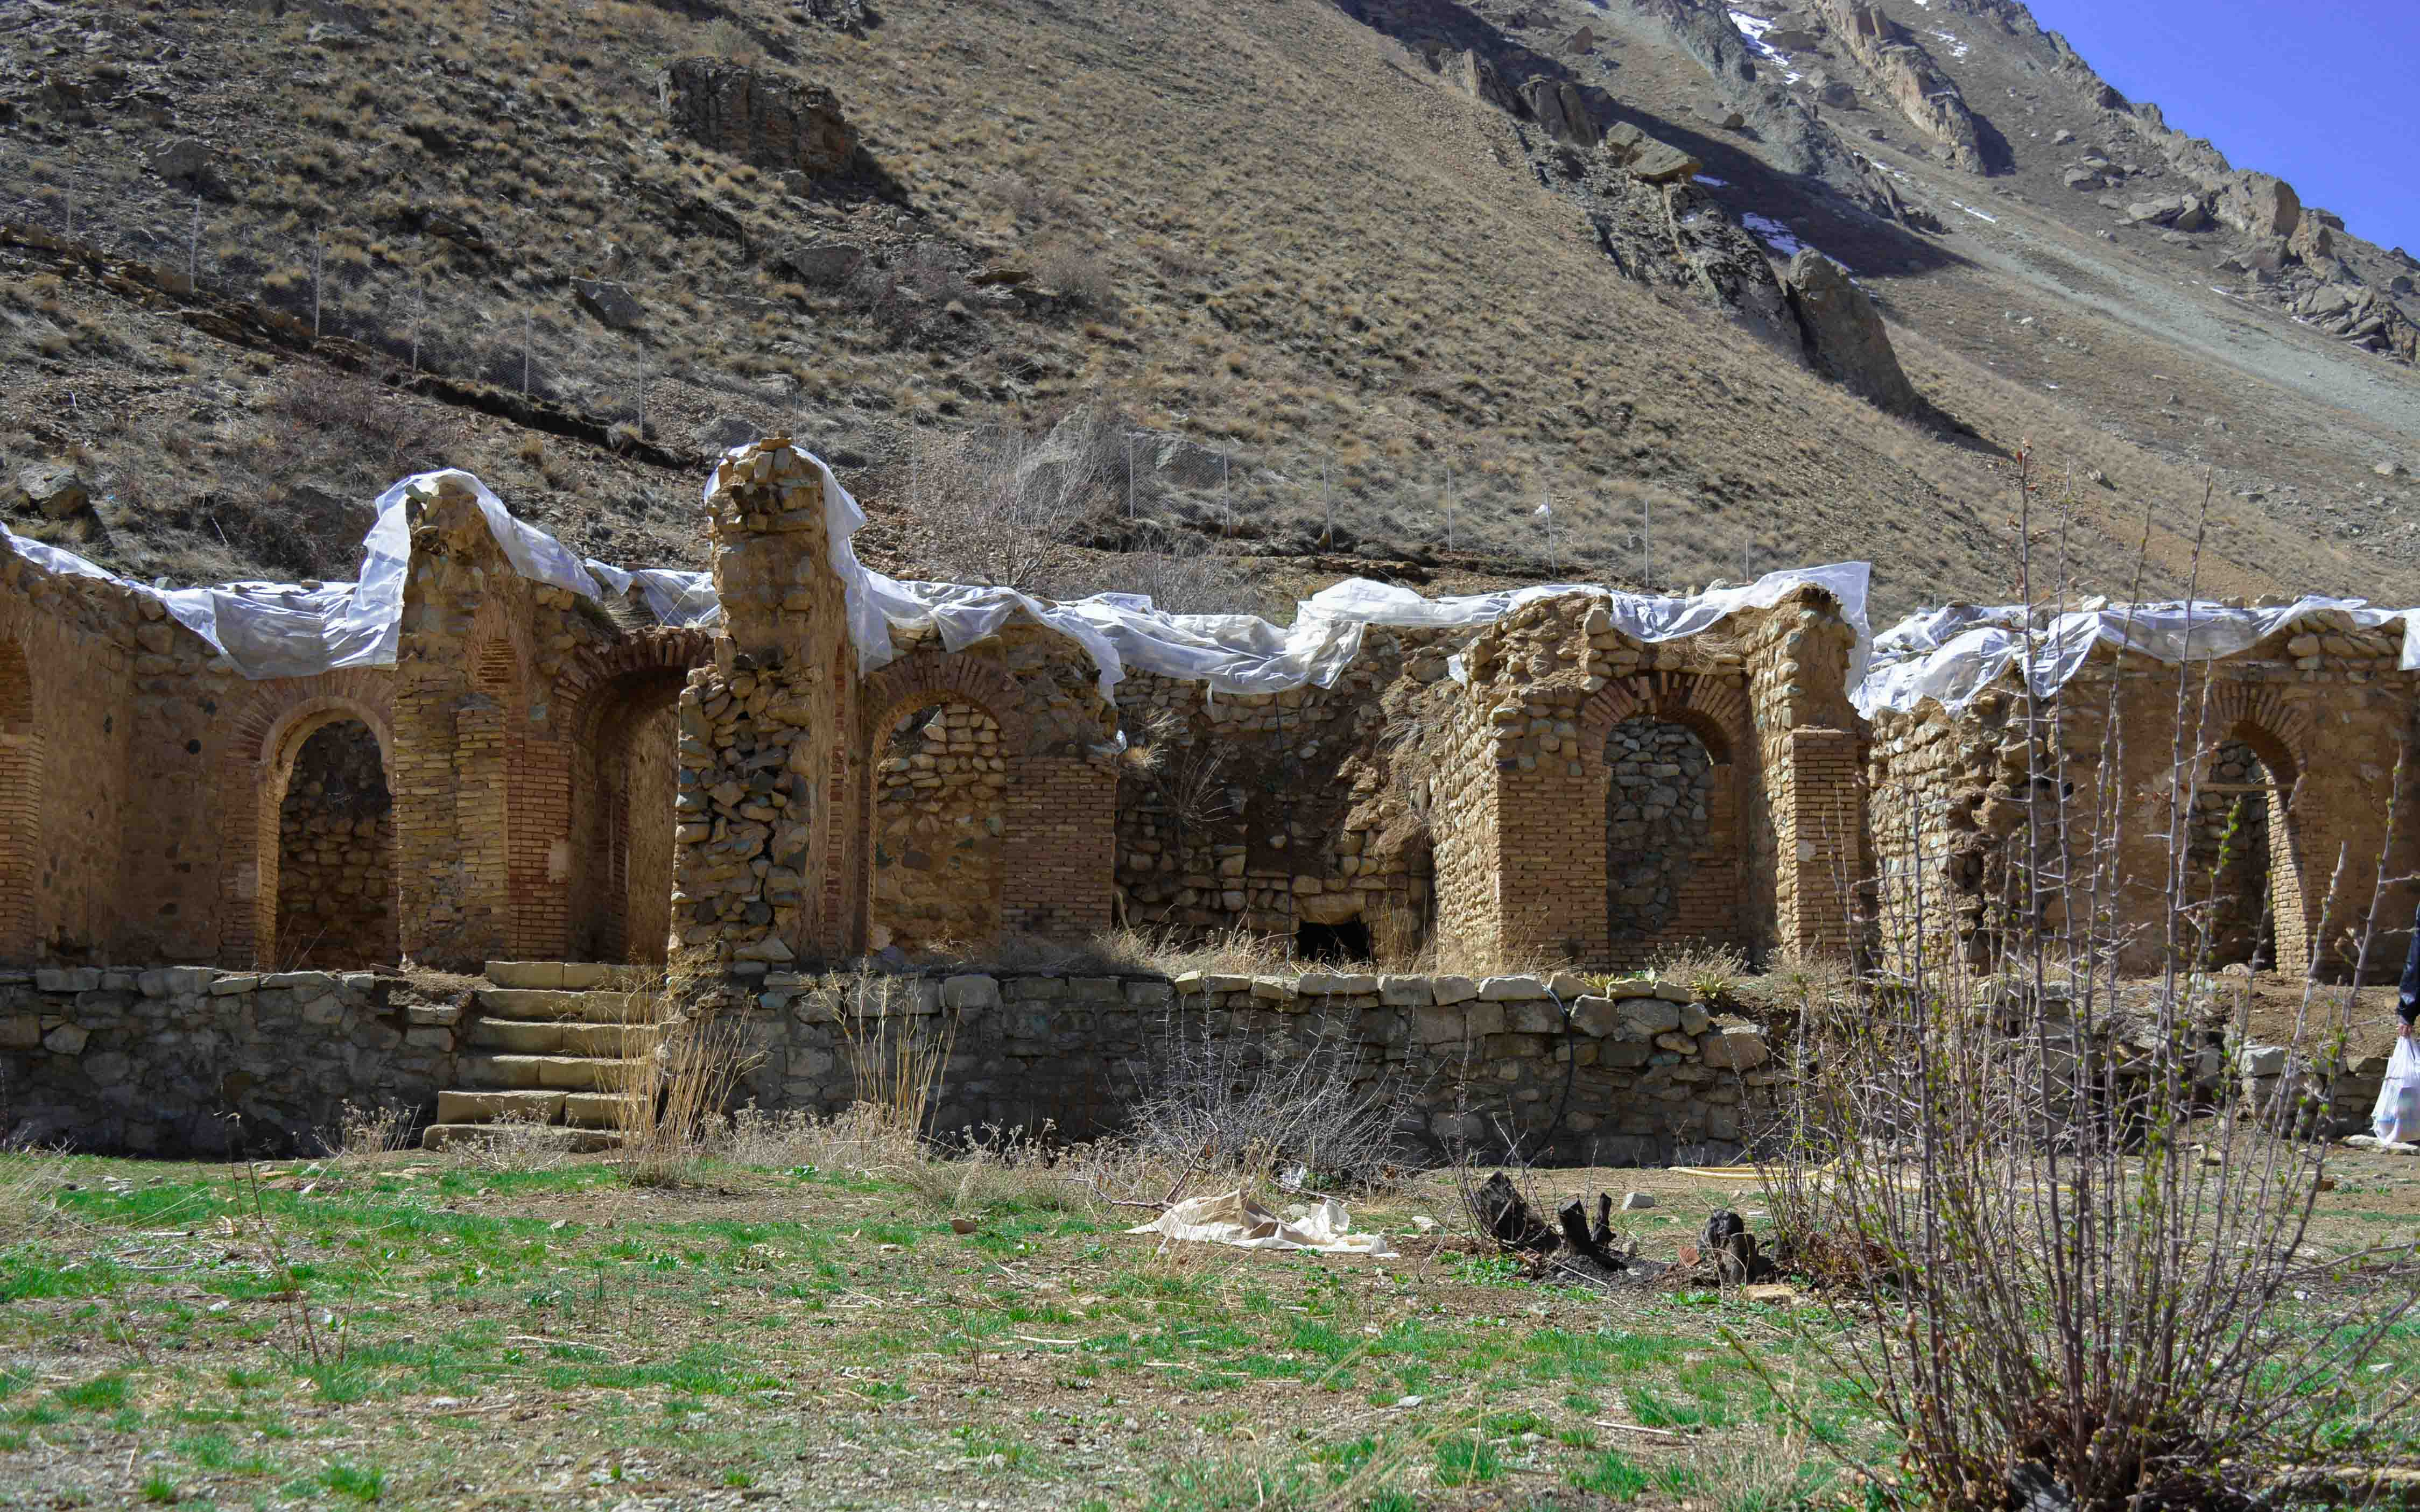 The remains of Shahrestanak palace